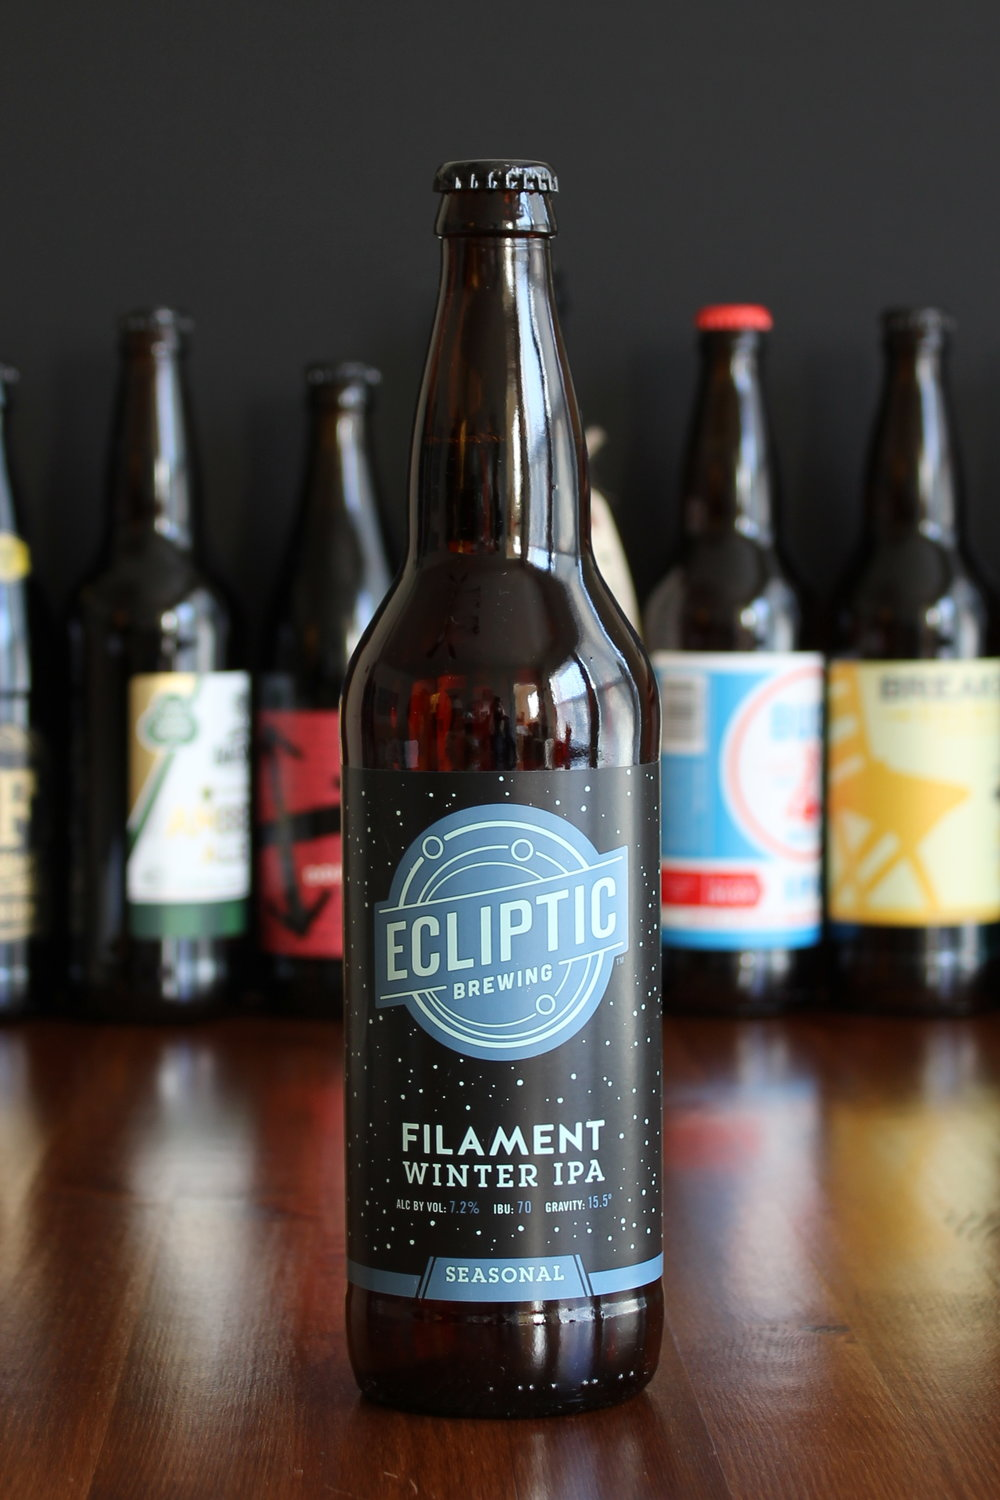 Filament Winter IPA